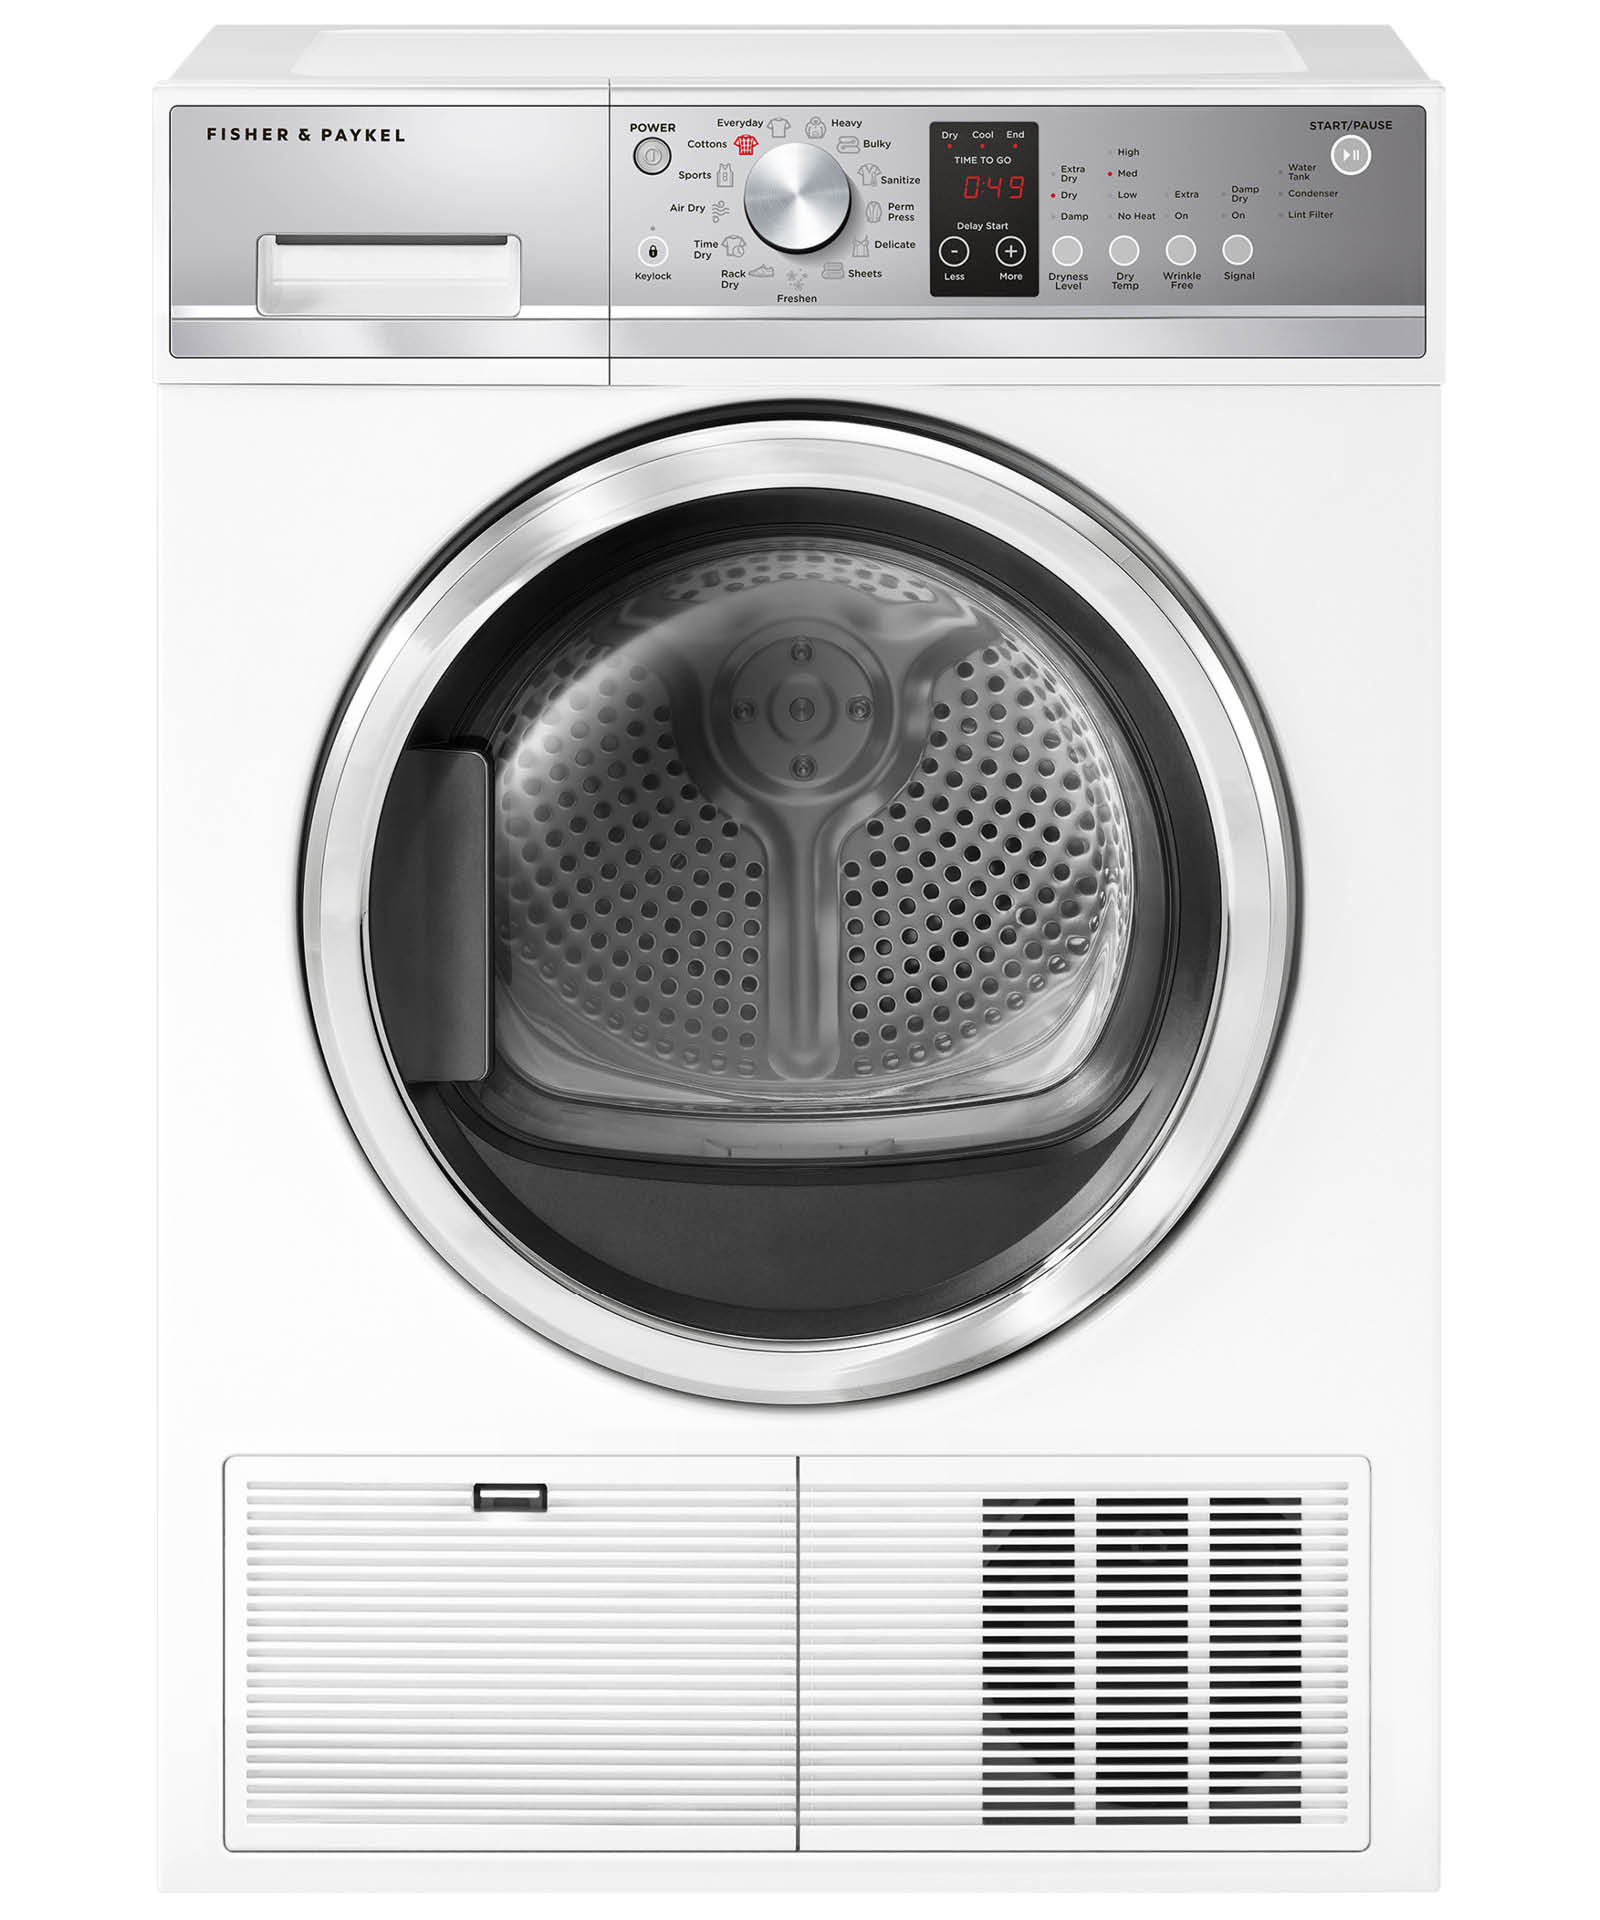 Fisher and Paykel Condensing dryer, 4.0 cu ft, Autosensing